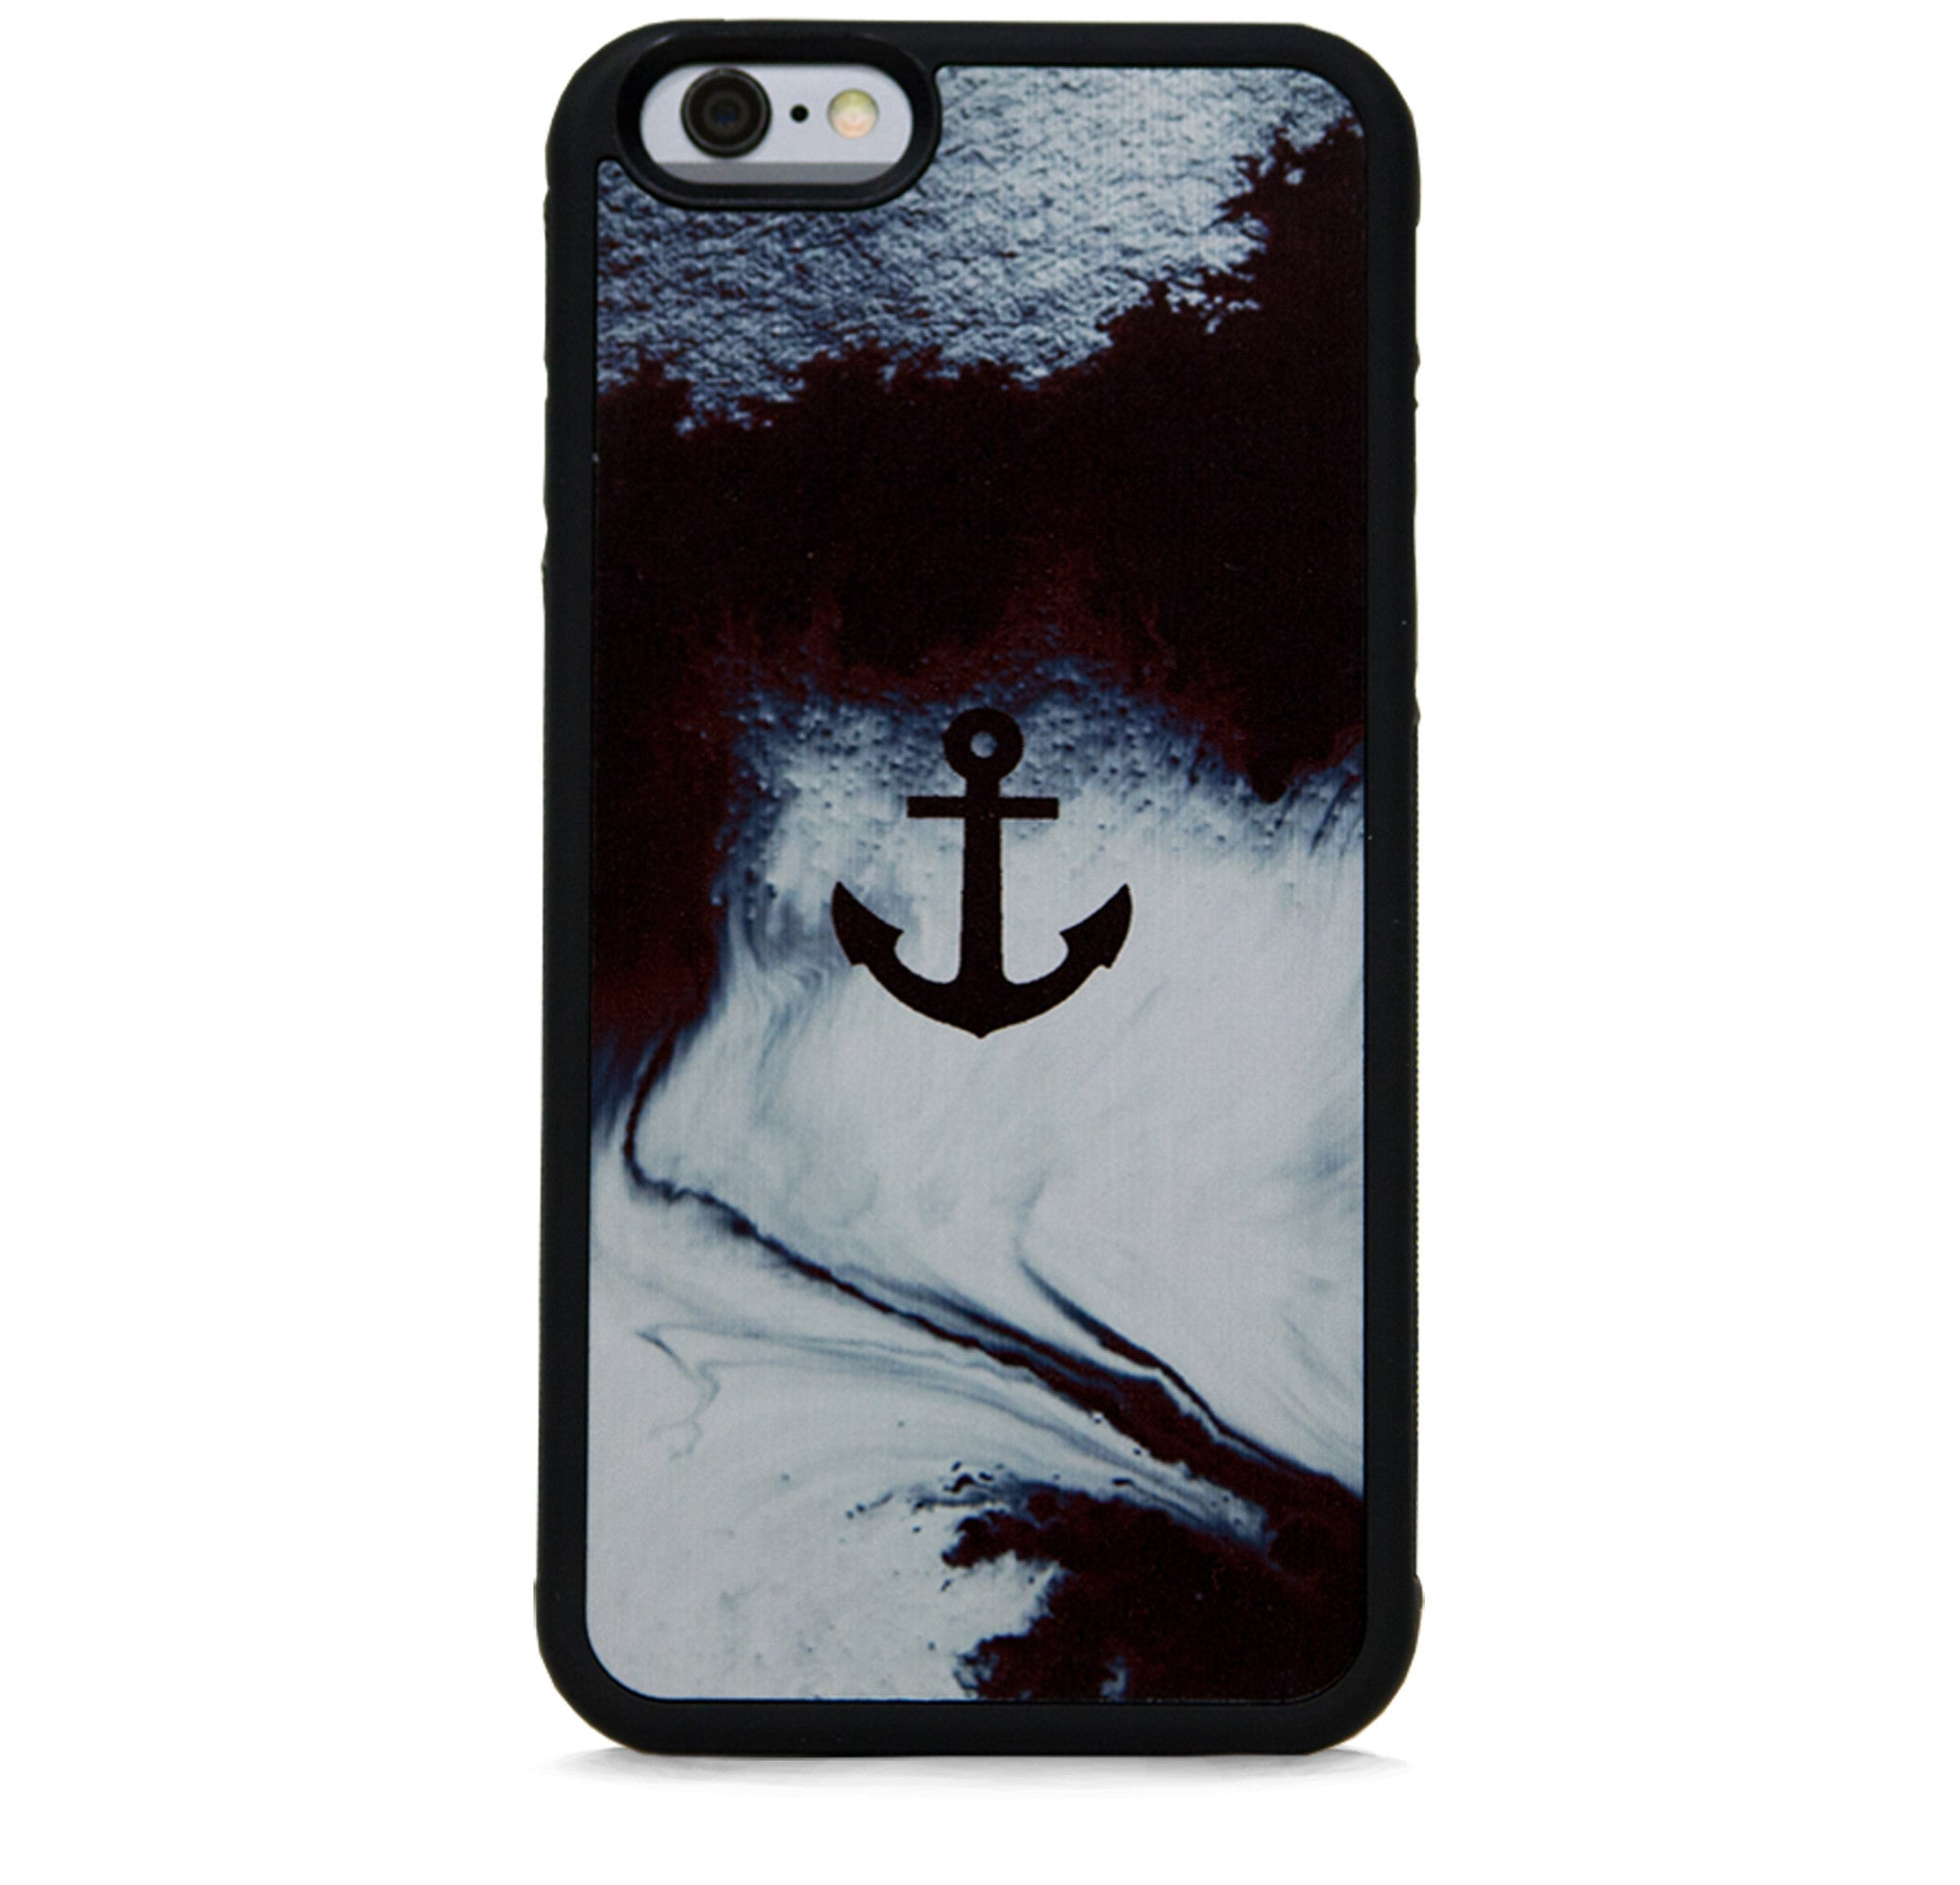 ABSTRACT AND ANCHOR BLK FOR IPHONE 6/6S PLUS